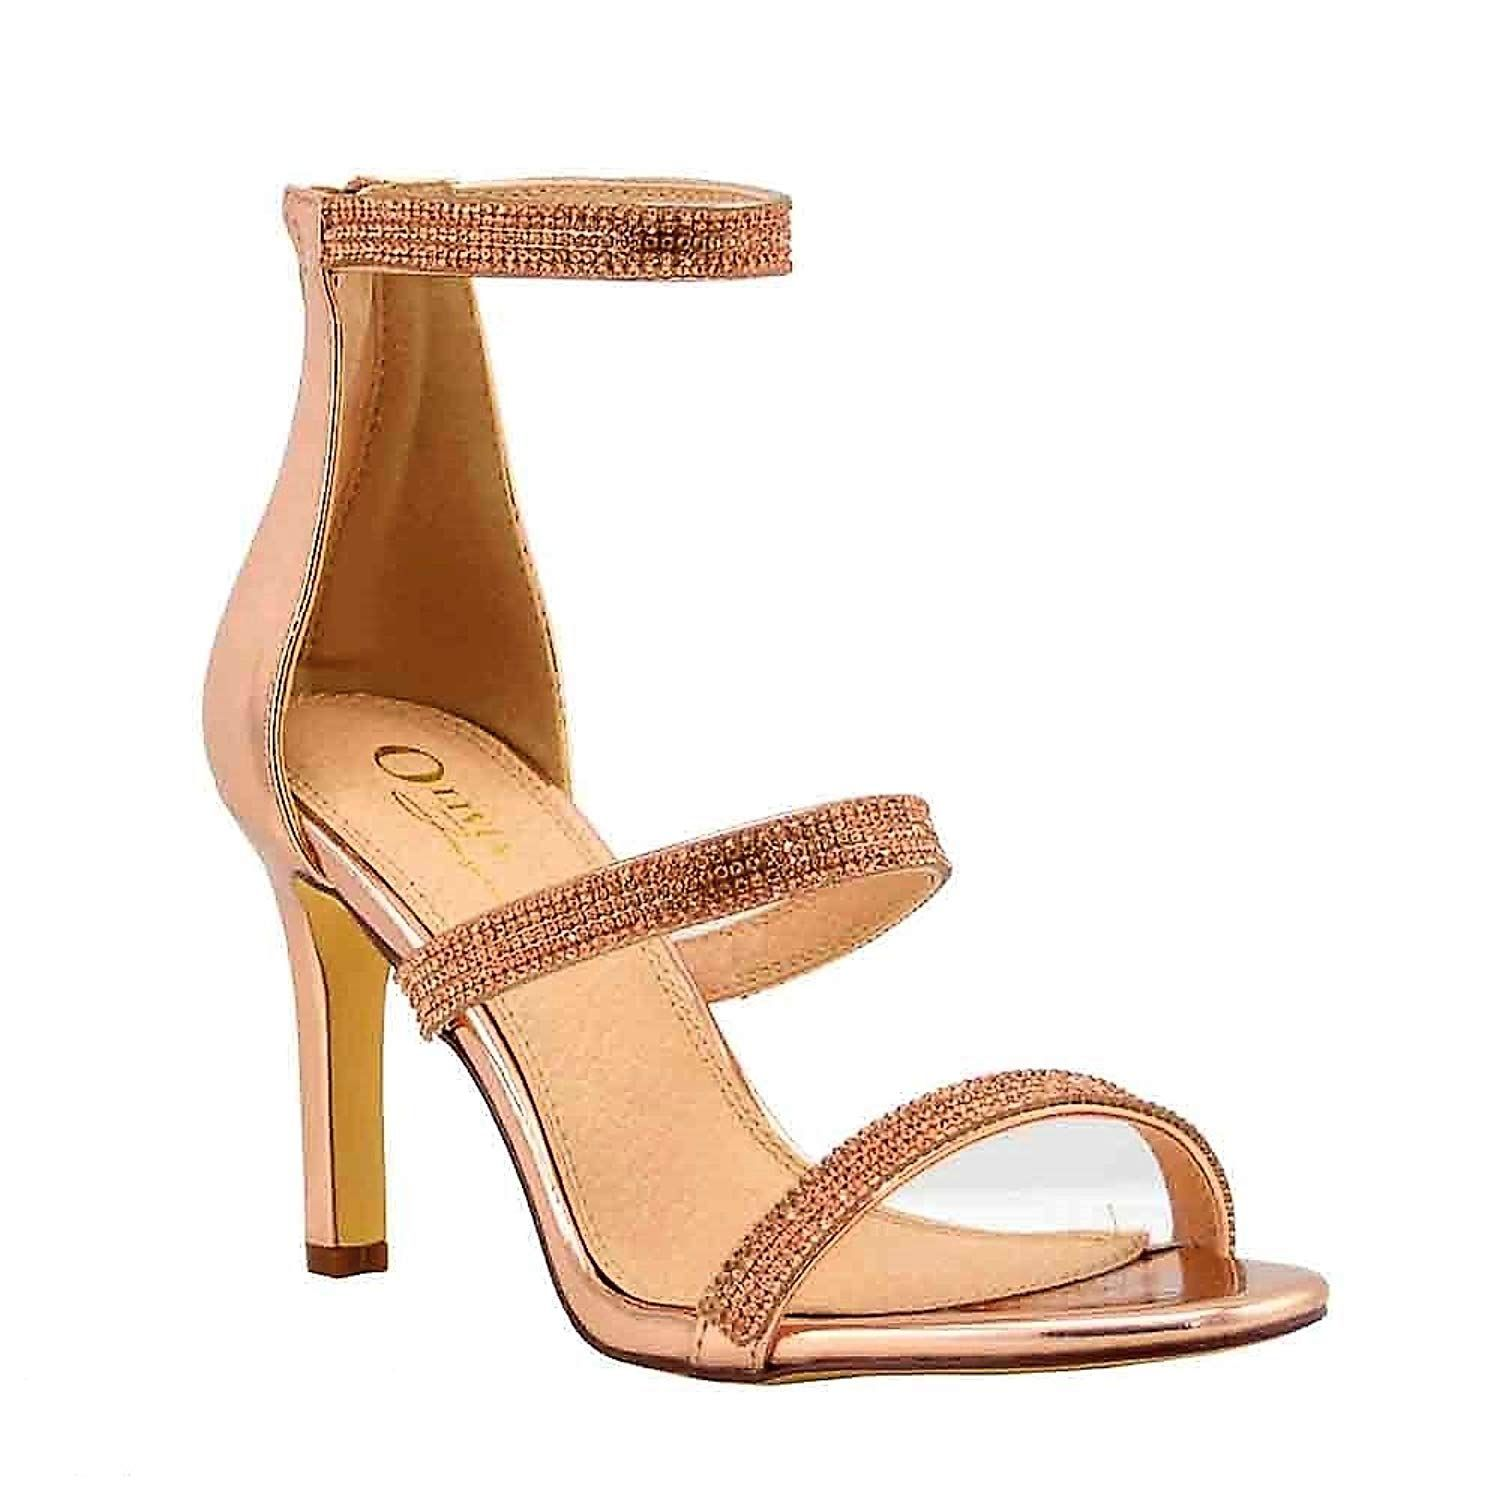 Olivia Jaymes Women S Casual Dress Sandal 7c Round Open Toe Rhinestone Covered Triple Band 7c Mid Kitten Kitten Heel Sandals Kitten Heel Shoes Sandals Heels